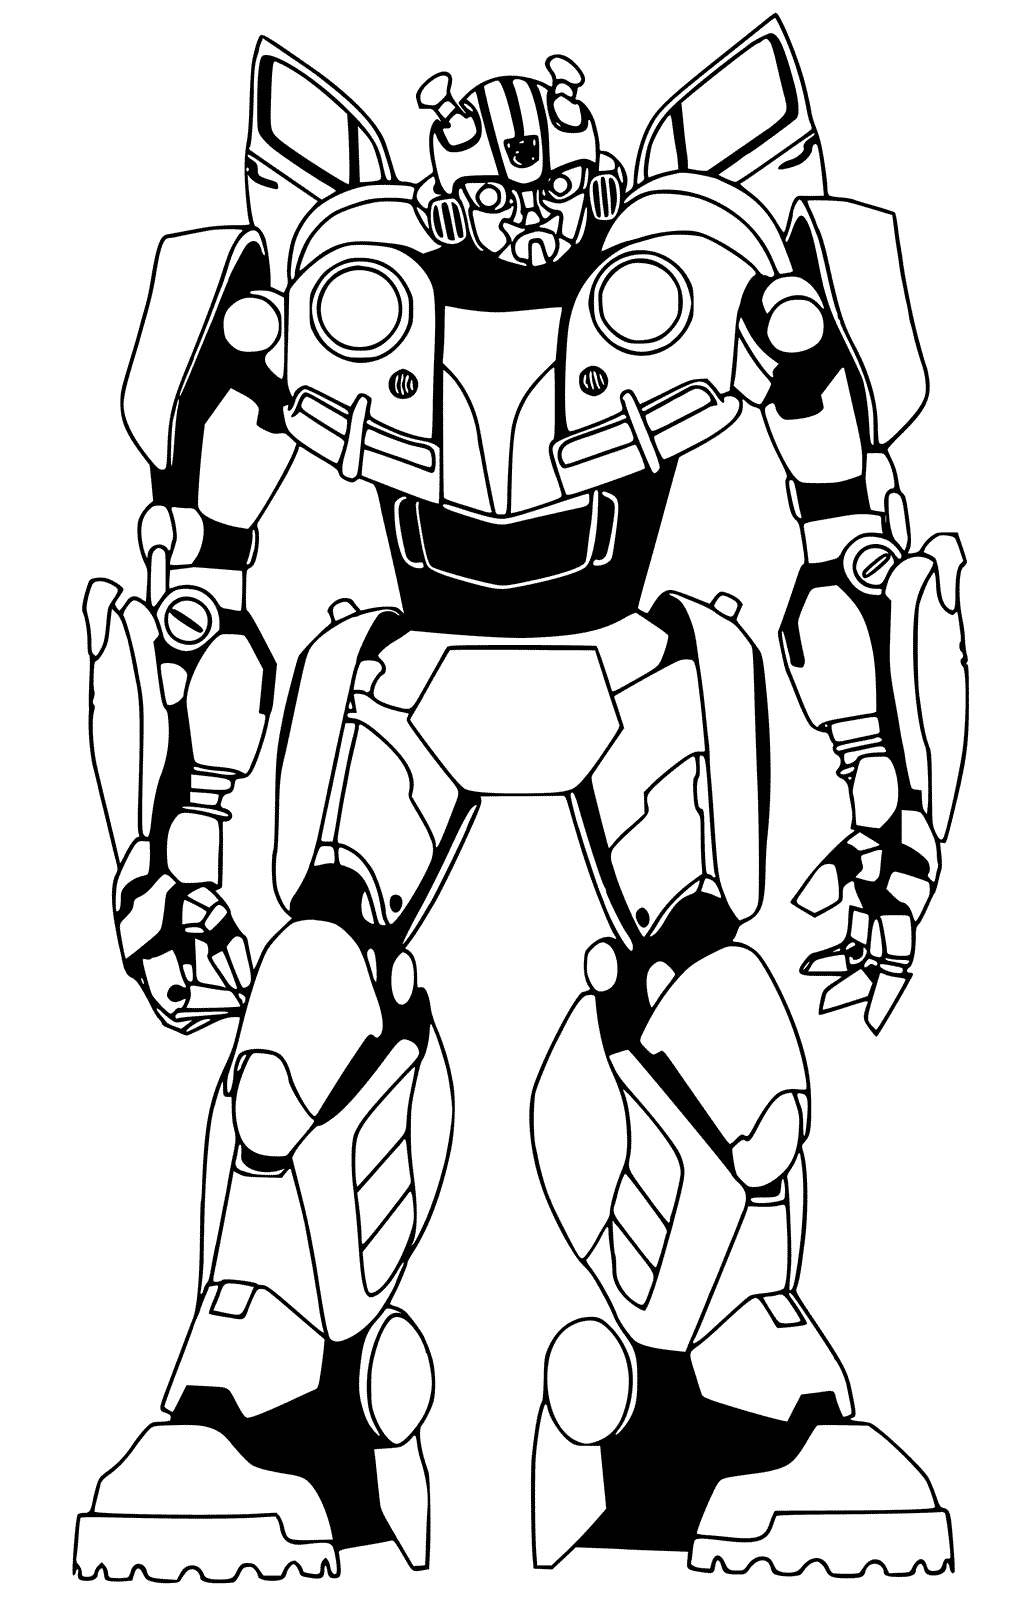 coloring pages transformers transformers rescue bots lineart coloring pages printable coloring transformers pages